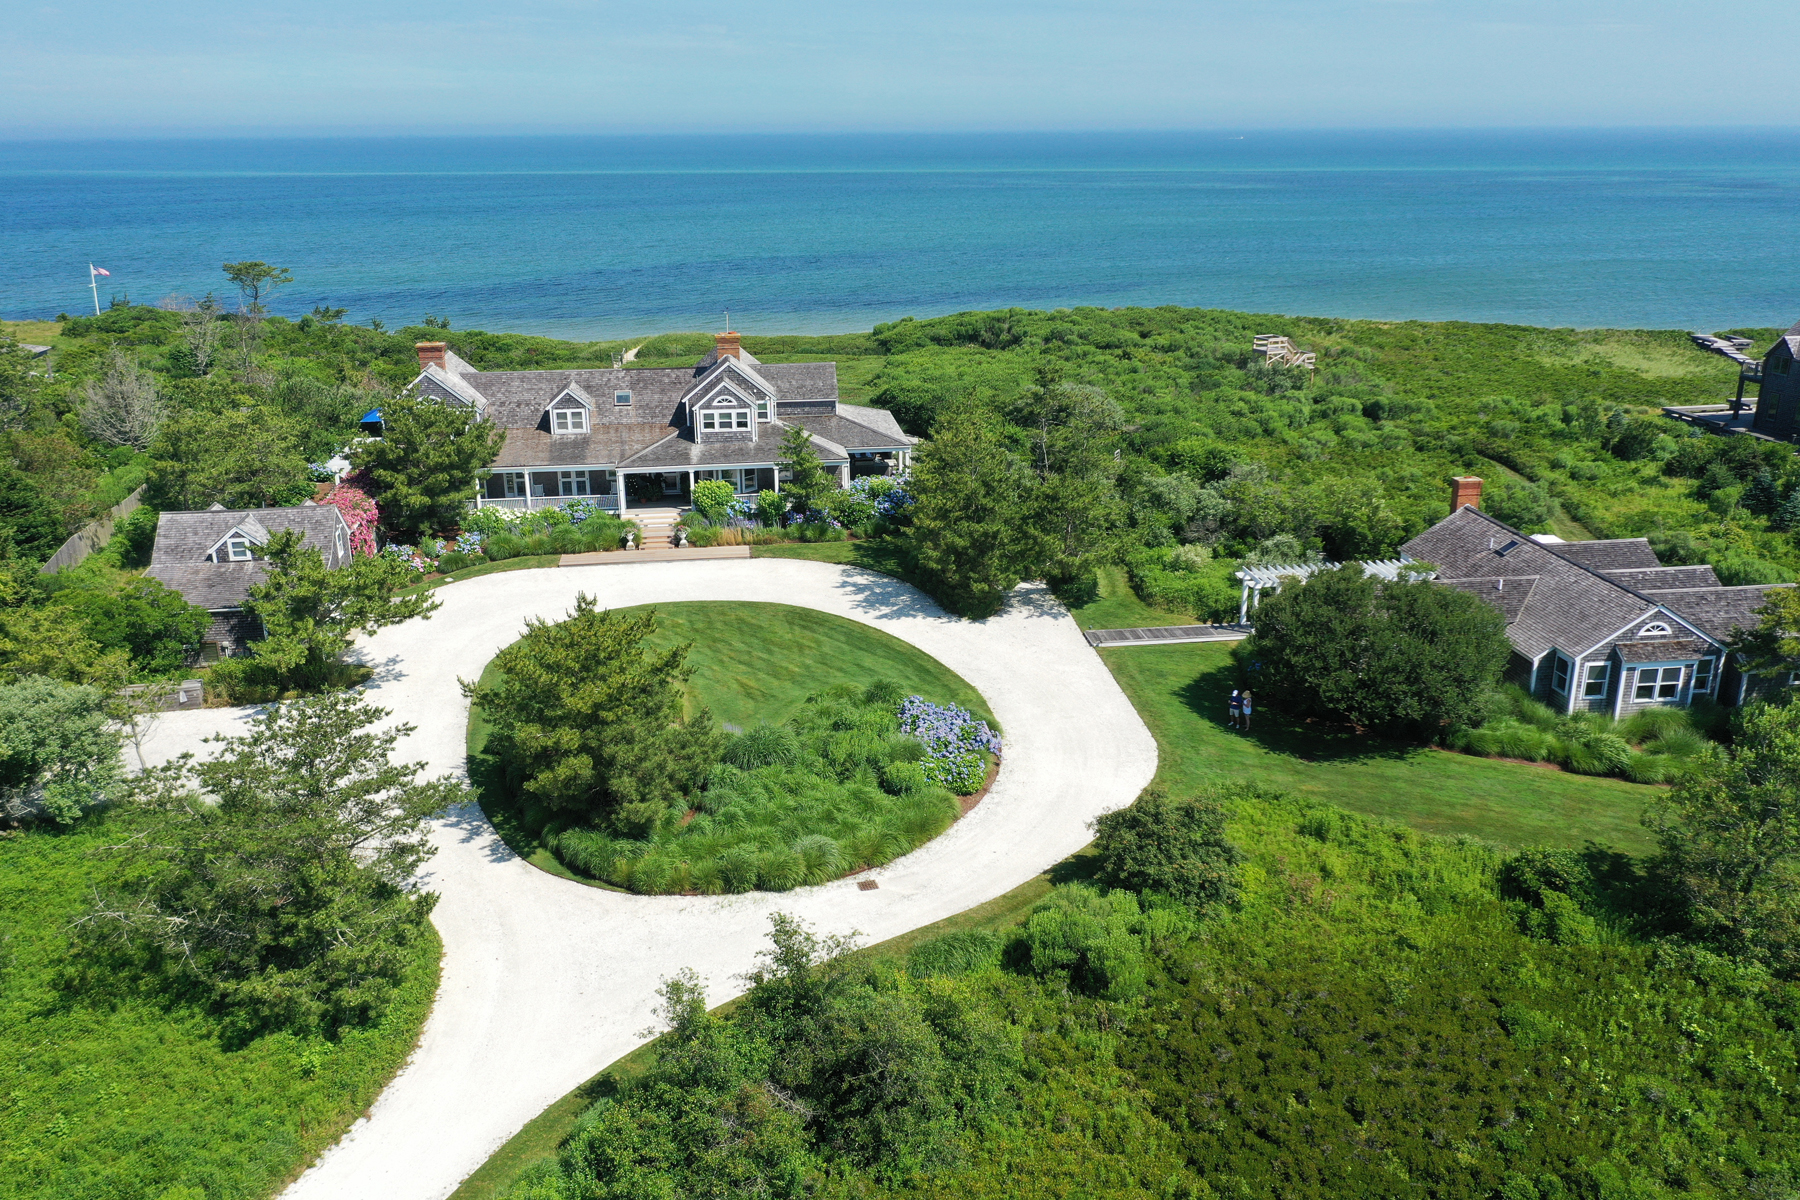 Single Family Homes για την Πώληση στο 7 BEDROOM NORTH SHORE BEACHFRONT COMPOUND 119 Eel Point Road, 119 R Eel Point Road, Nantucket, Μασαχουσετη 02554 Ηνωμένες Πολιτείες